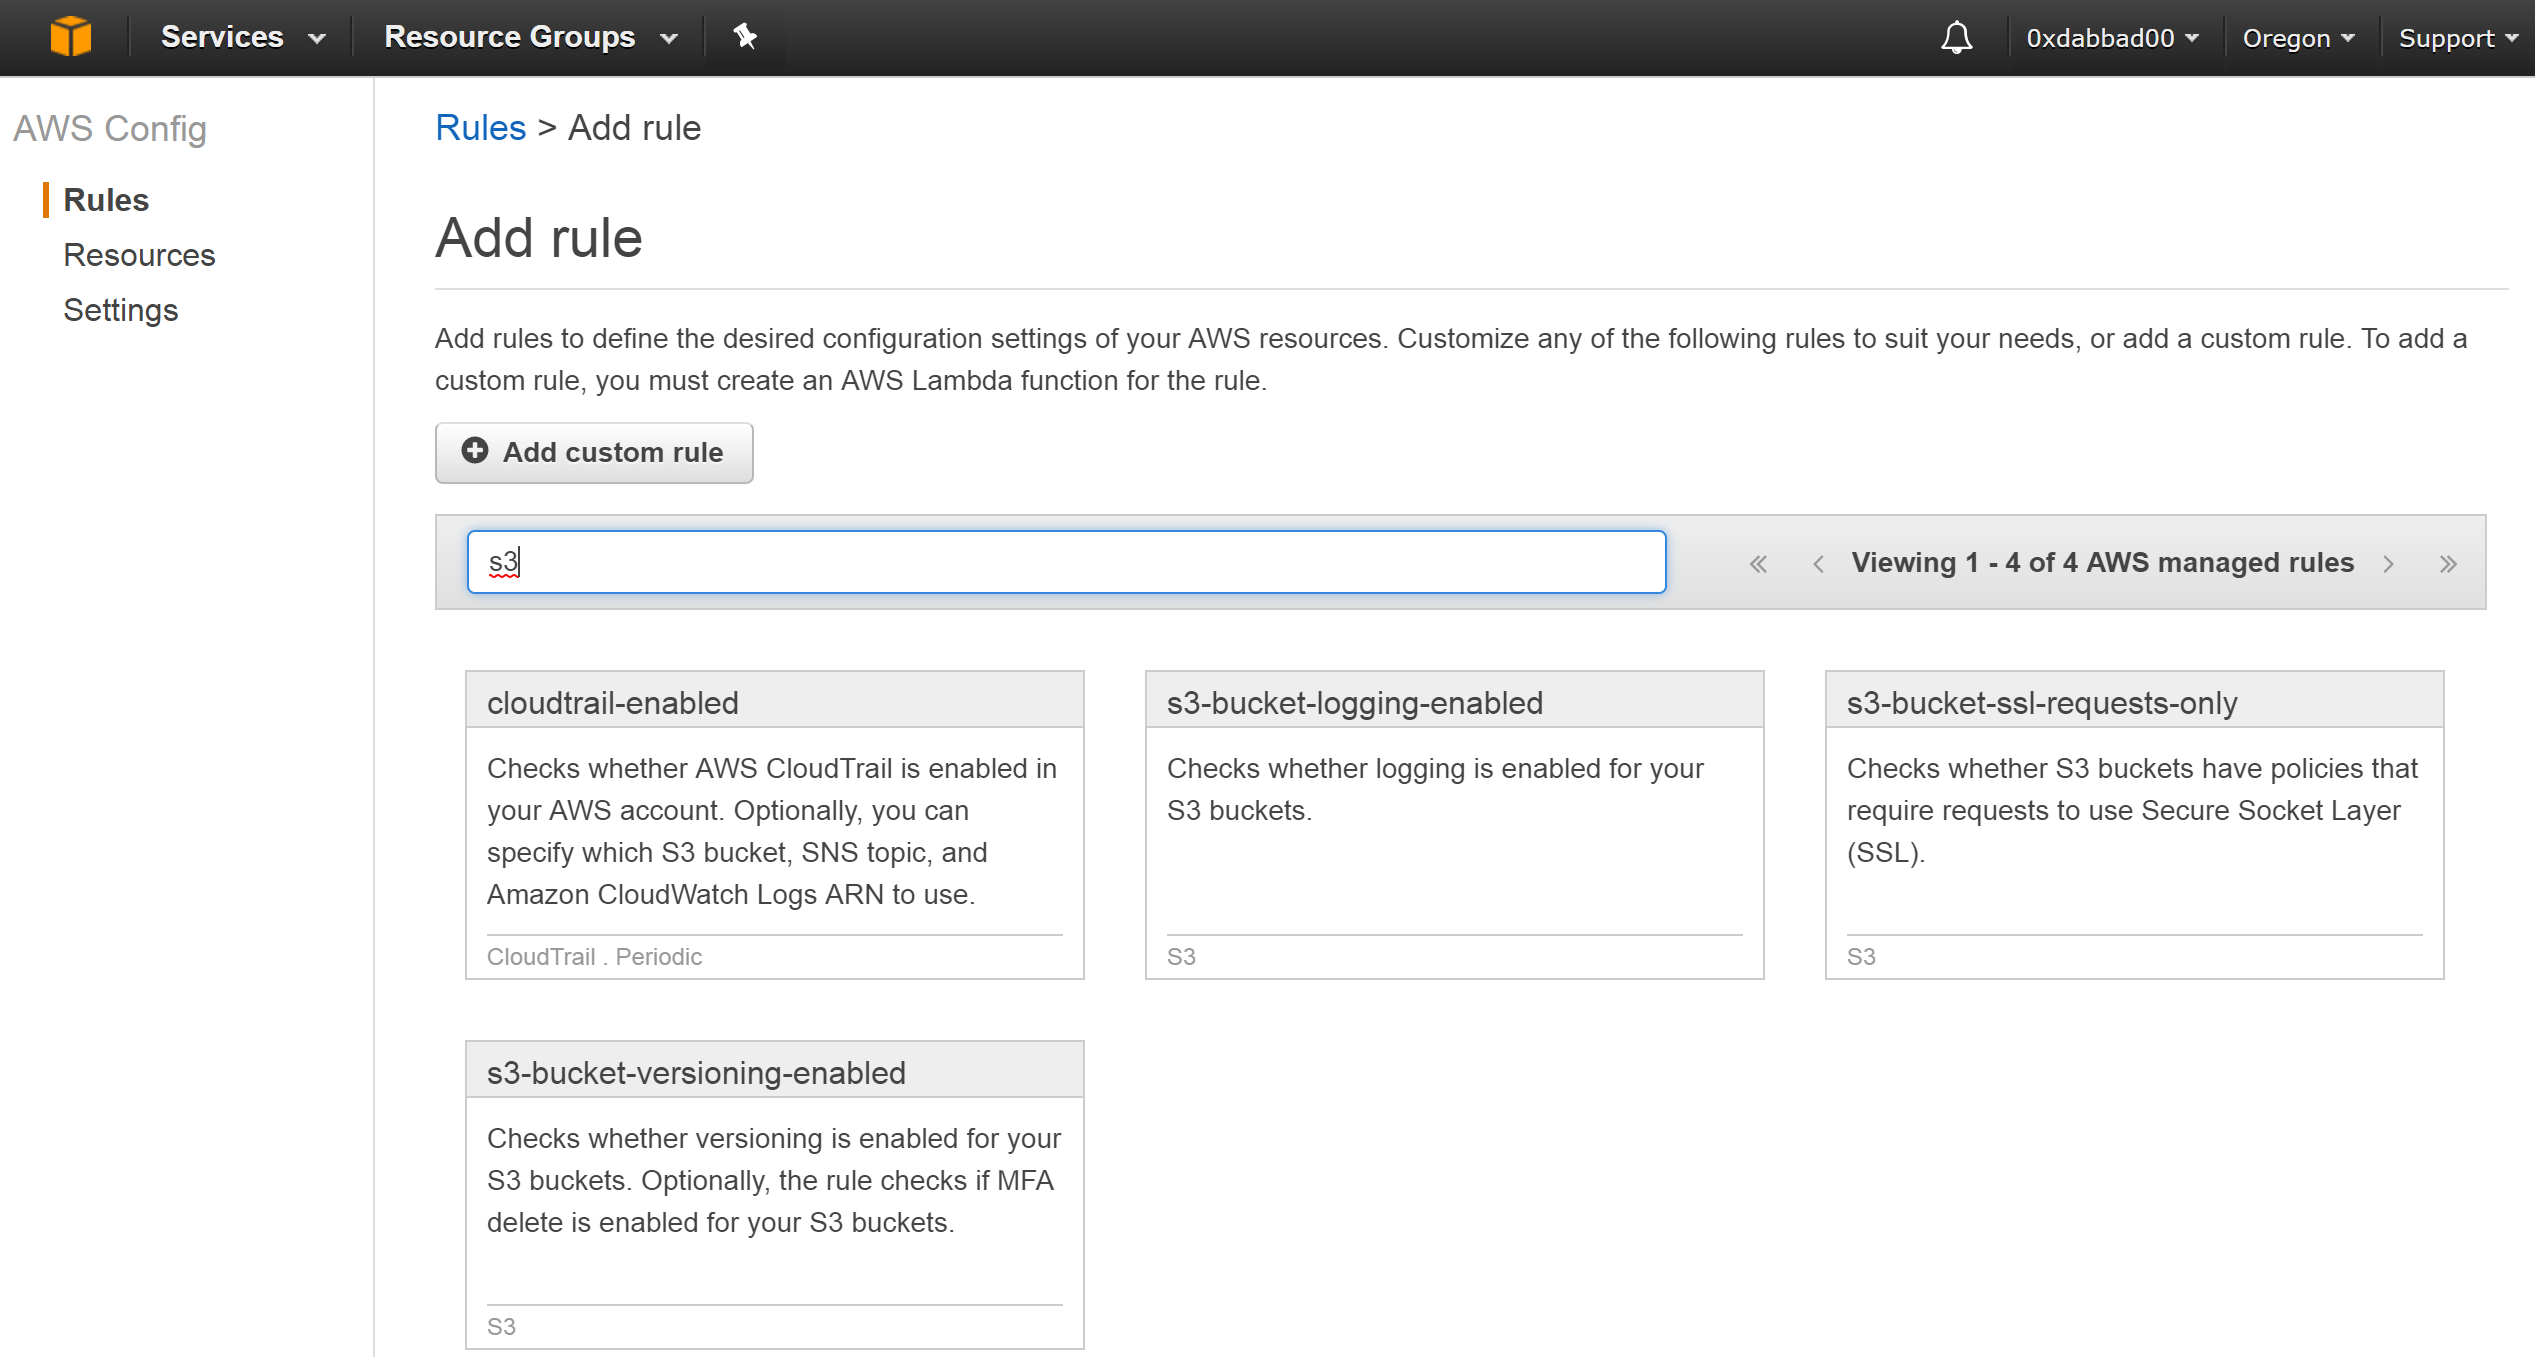 Summit Route - Free tools for auditing the security of an AWS account